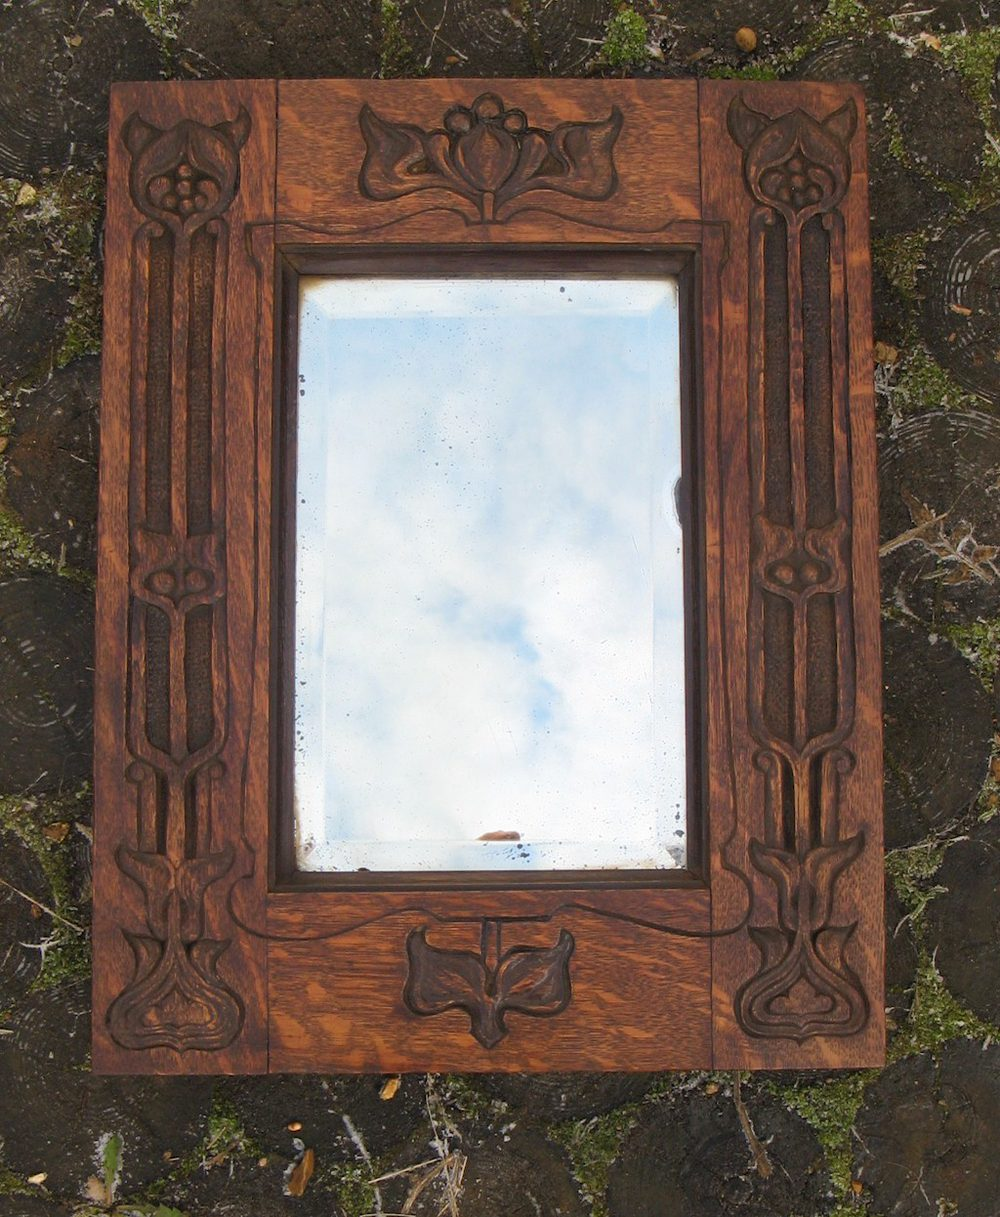 Arts and crafts mirrors - Arts And Crafts Style Mirrors Arts And Crafts Mirrors Art Nouveau Carved Oak Mirror Arts